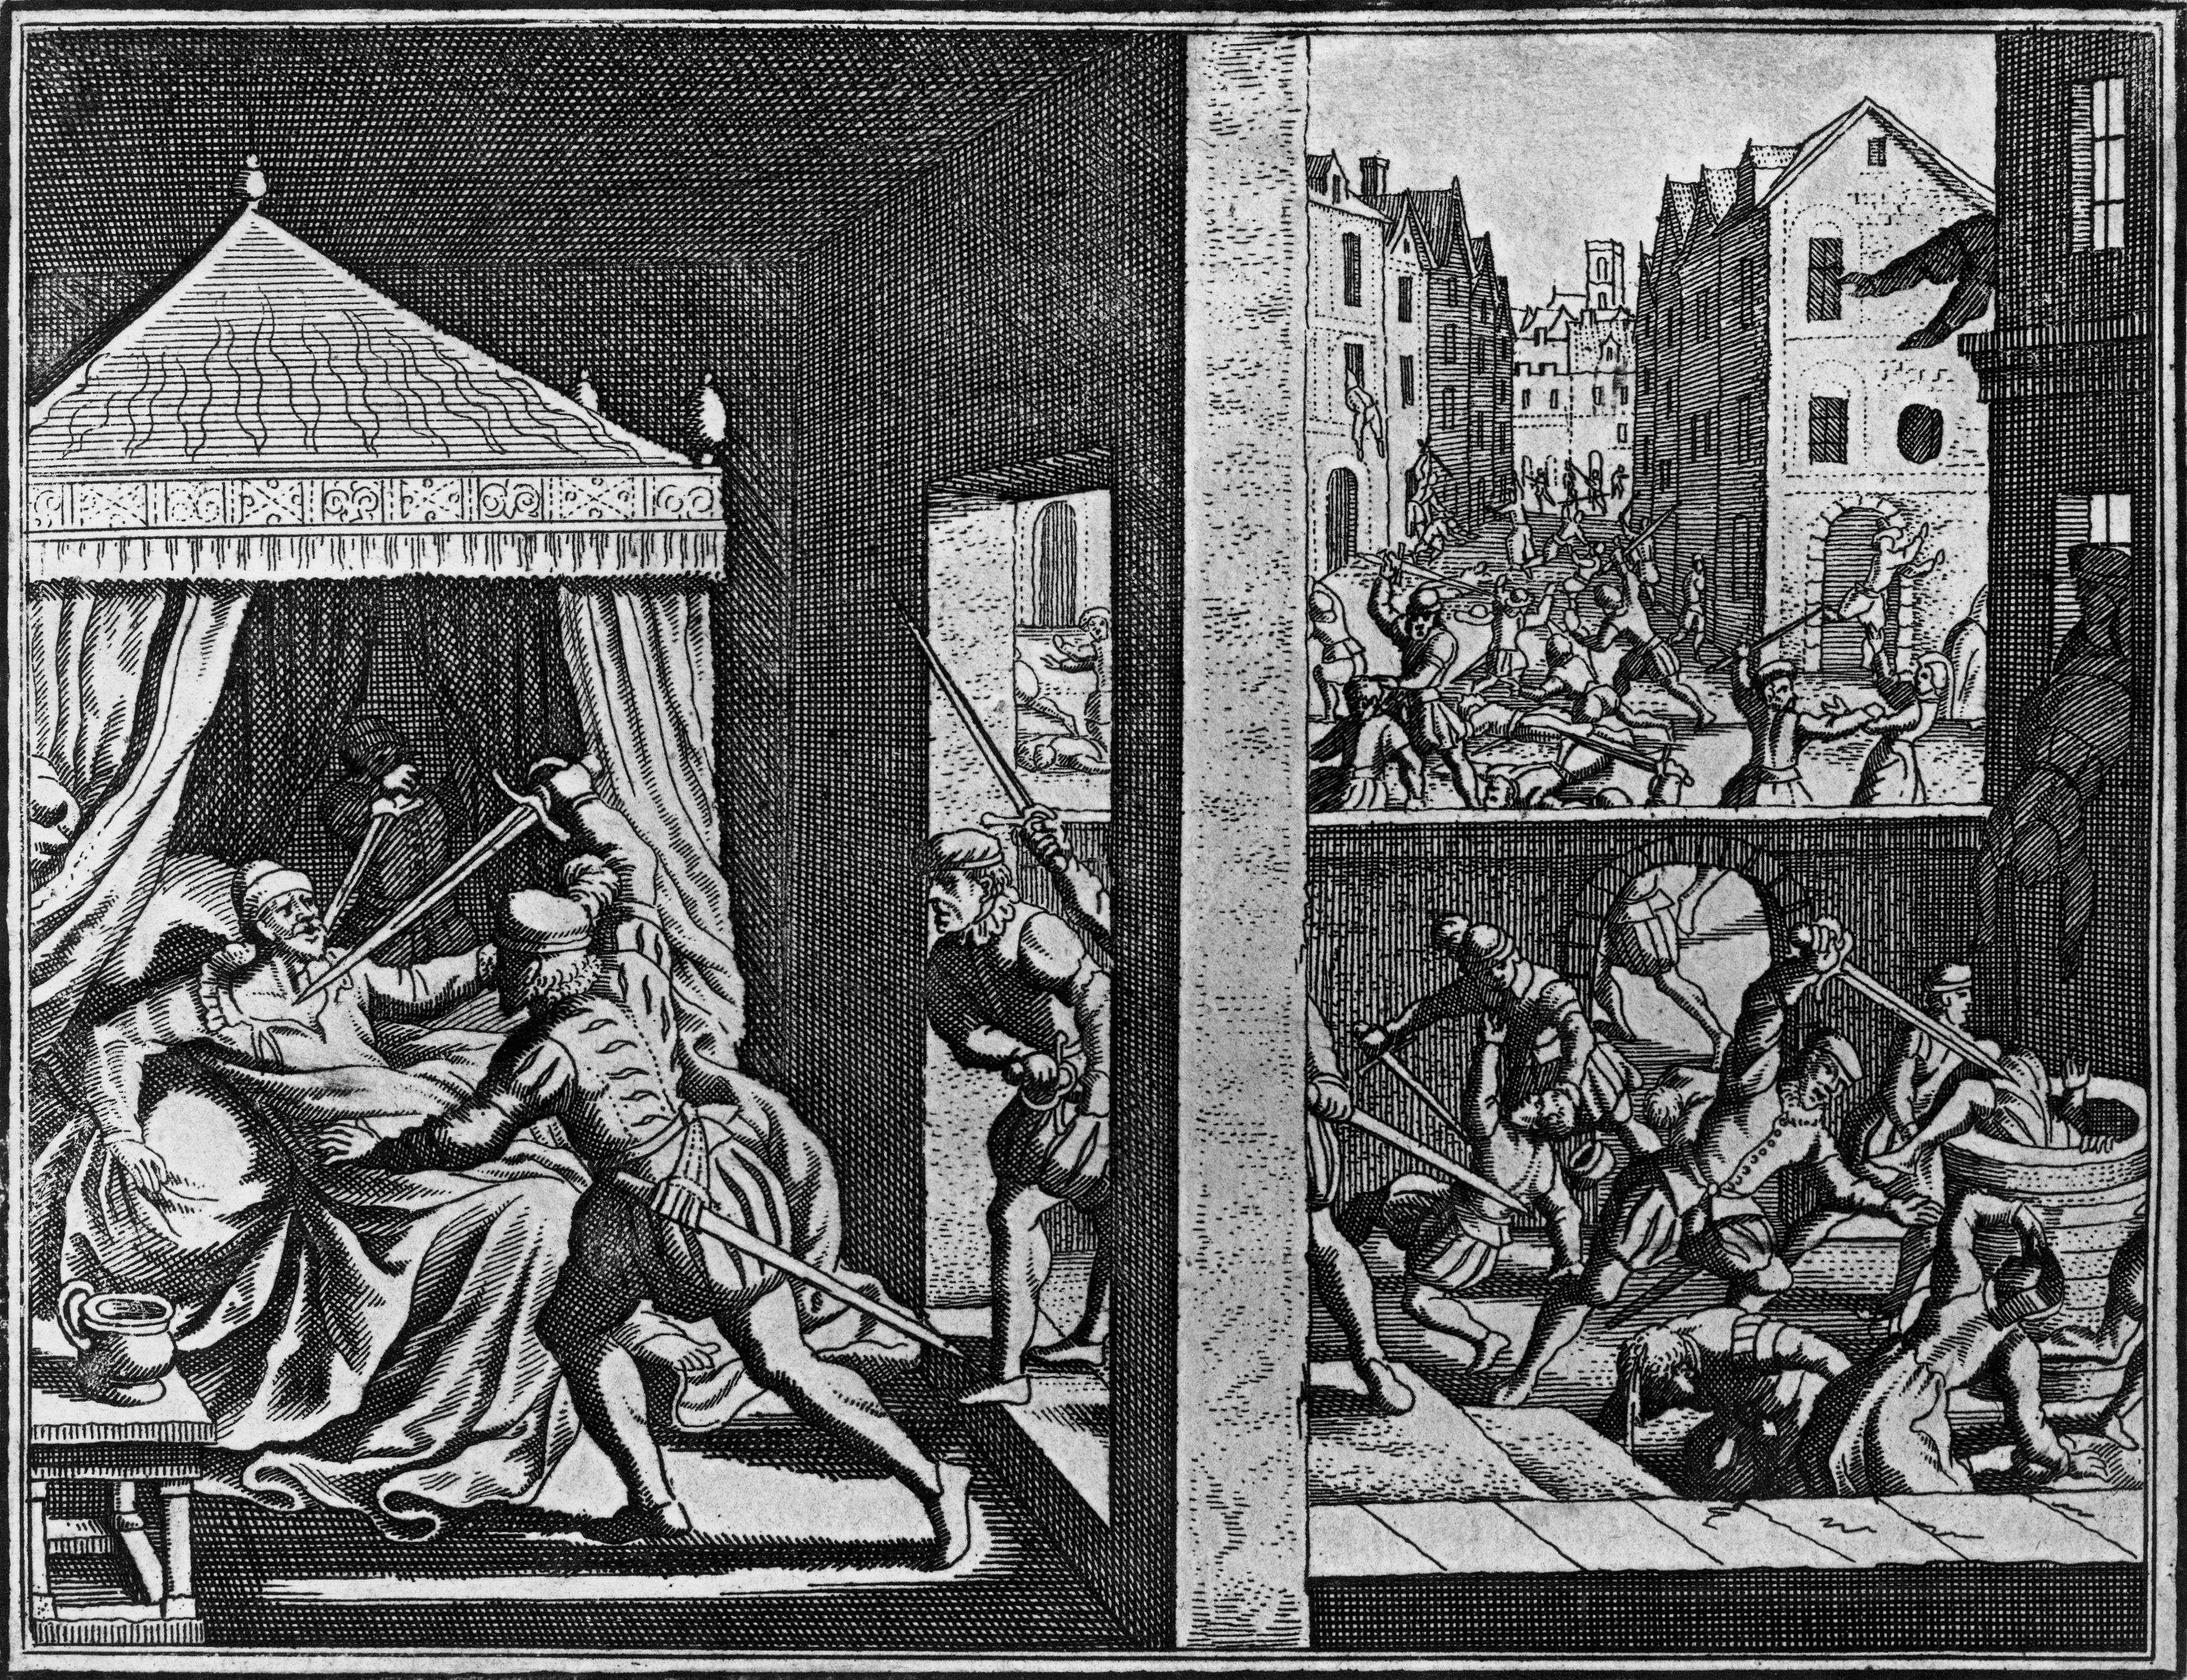 Massacre of the Huguenots on St Bartholomews Day, August 23-24, 1572, engraving, France, 16th century